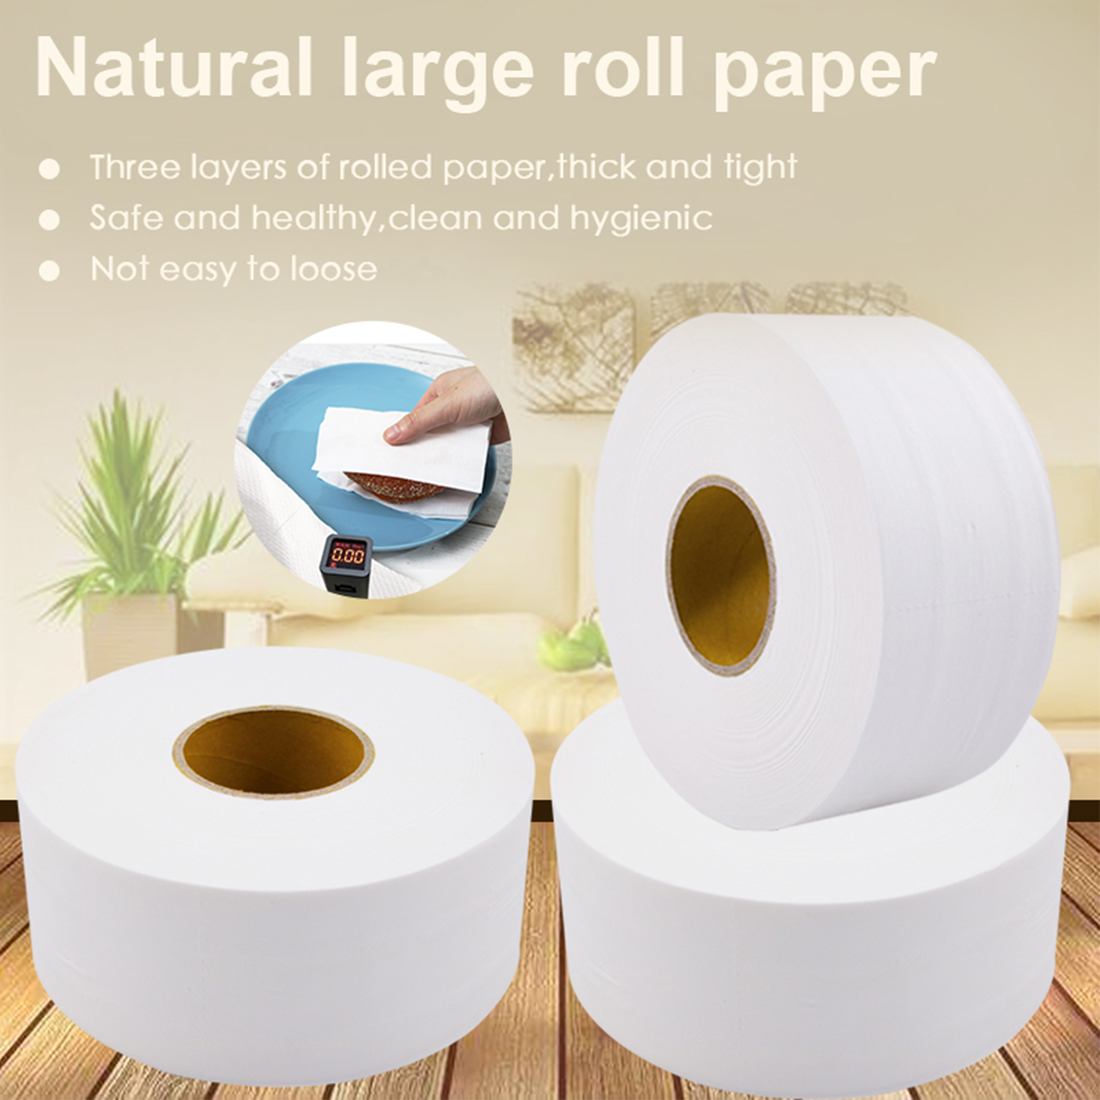 Roll Pack of Paper Home Bath Paper Bath Toilet Roll Paper Toilet Paper White Toilet Paper Toilet Roll Tissue Towels Tissue